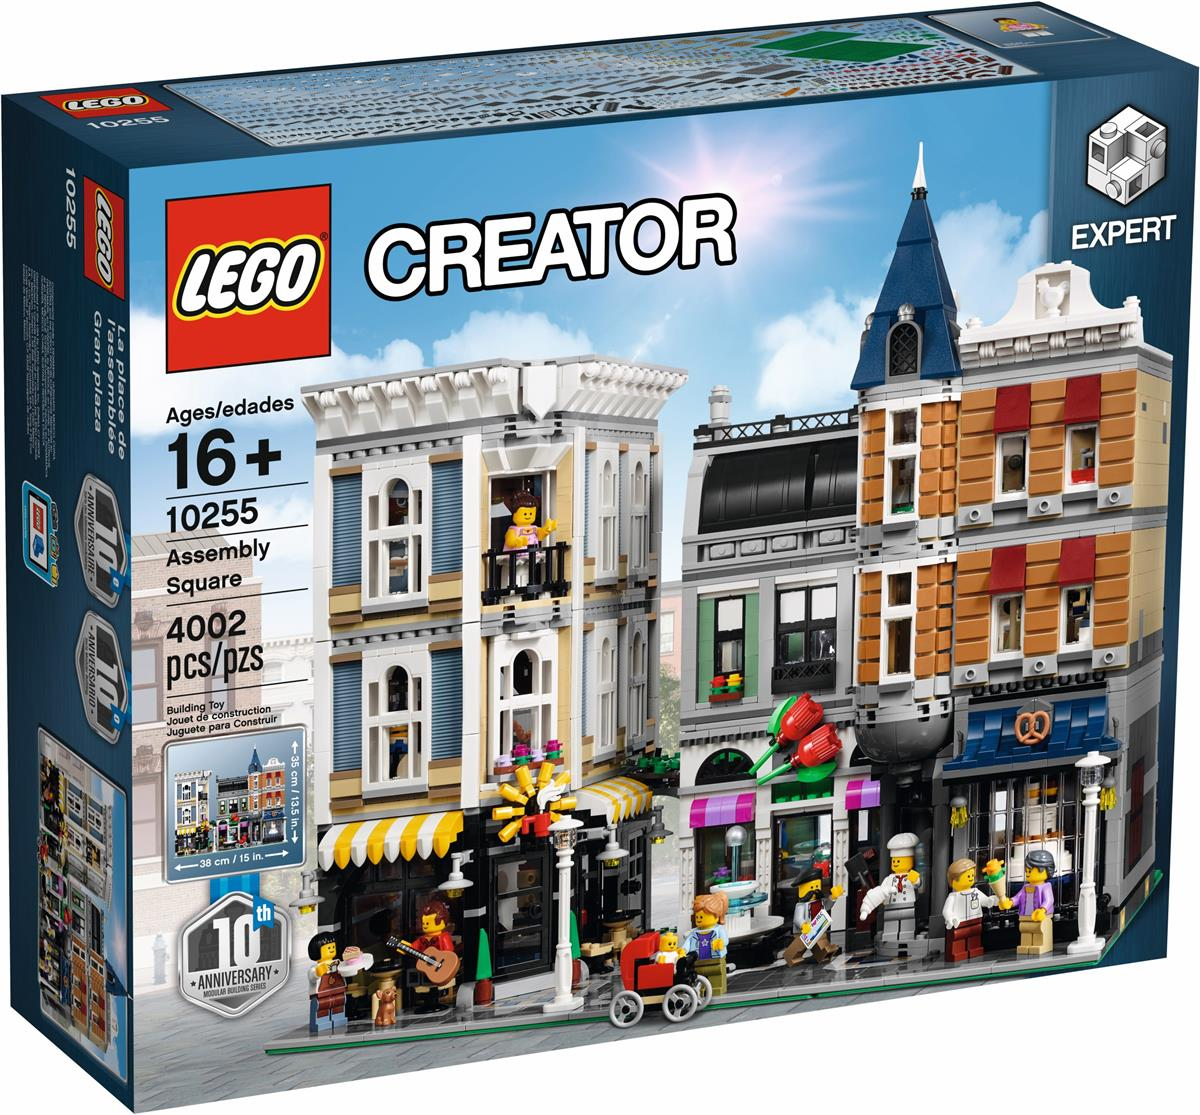 lego 10255 creator expert assembly sq end 3 8 2020 9 15 am. Black Bedroom Furniture Sets. Home Design Ideas